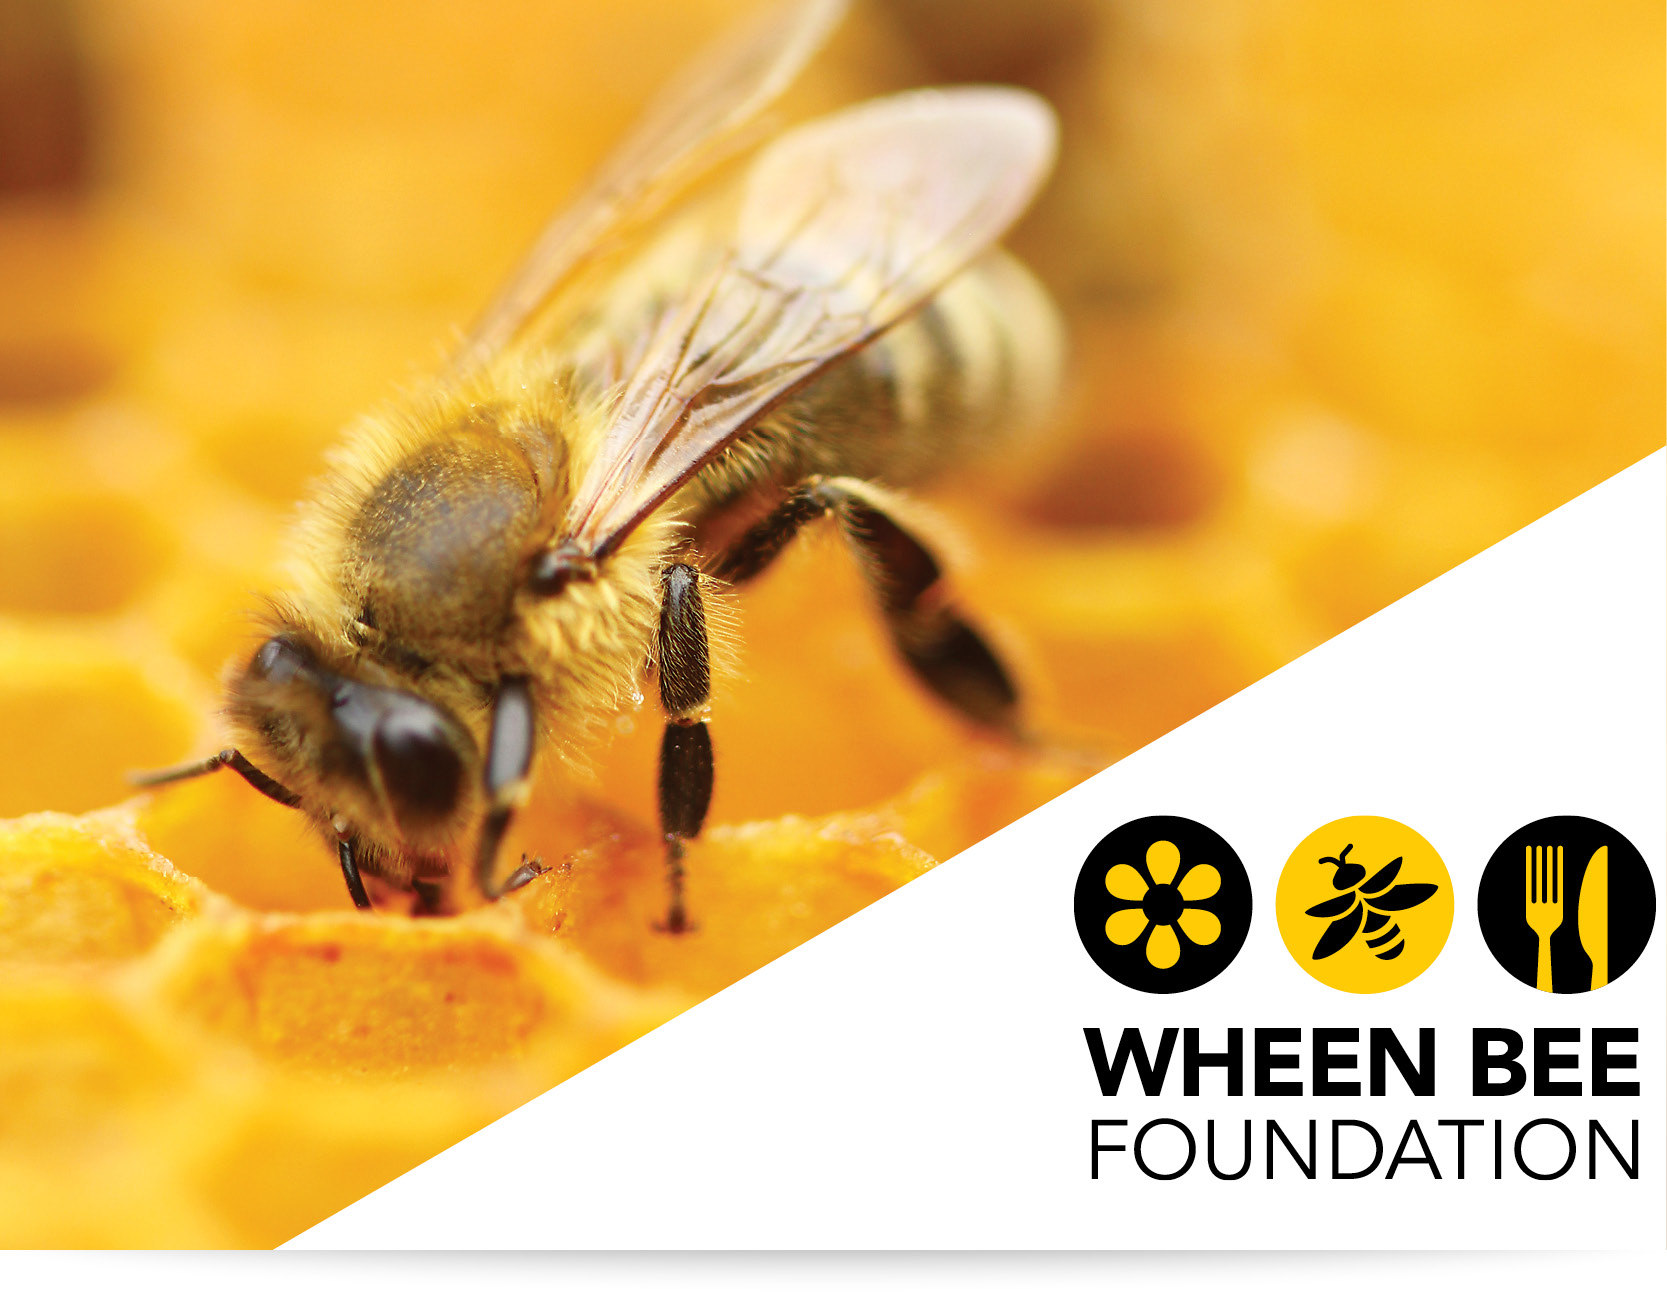 The Wheen Bee Foundation